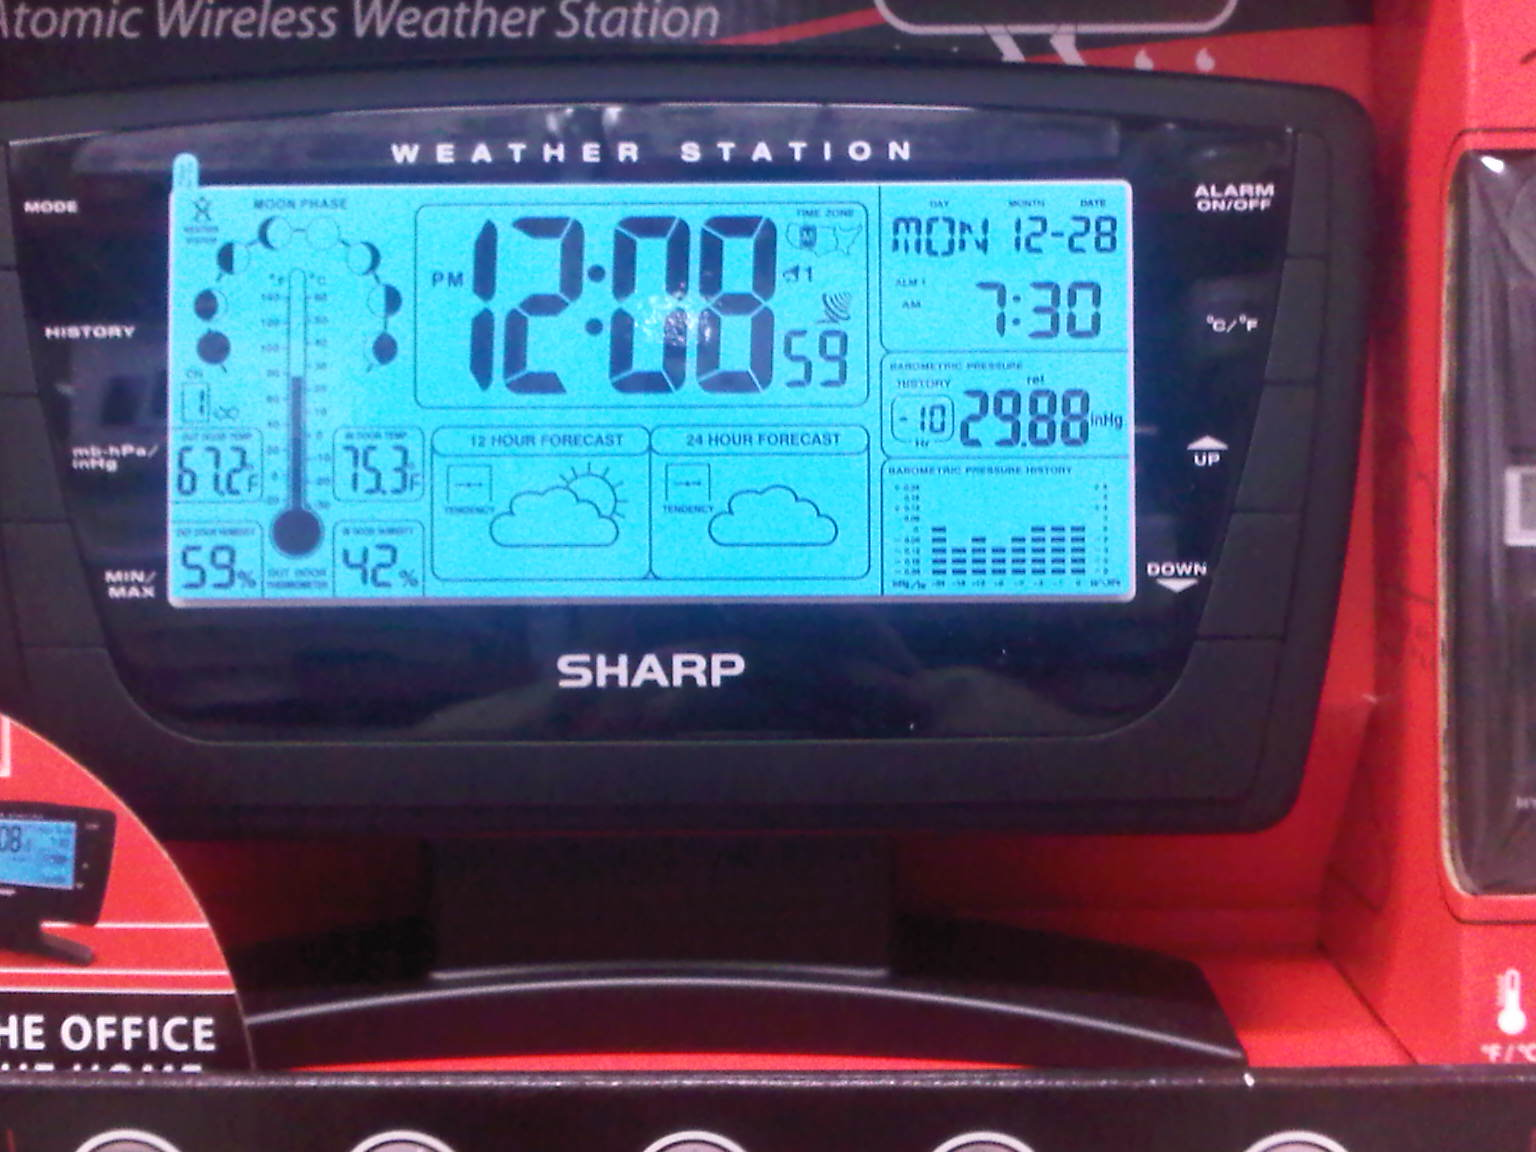 Sharp Weather Station Spc775 Manual http://horkucoolra.lefora.com/2012